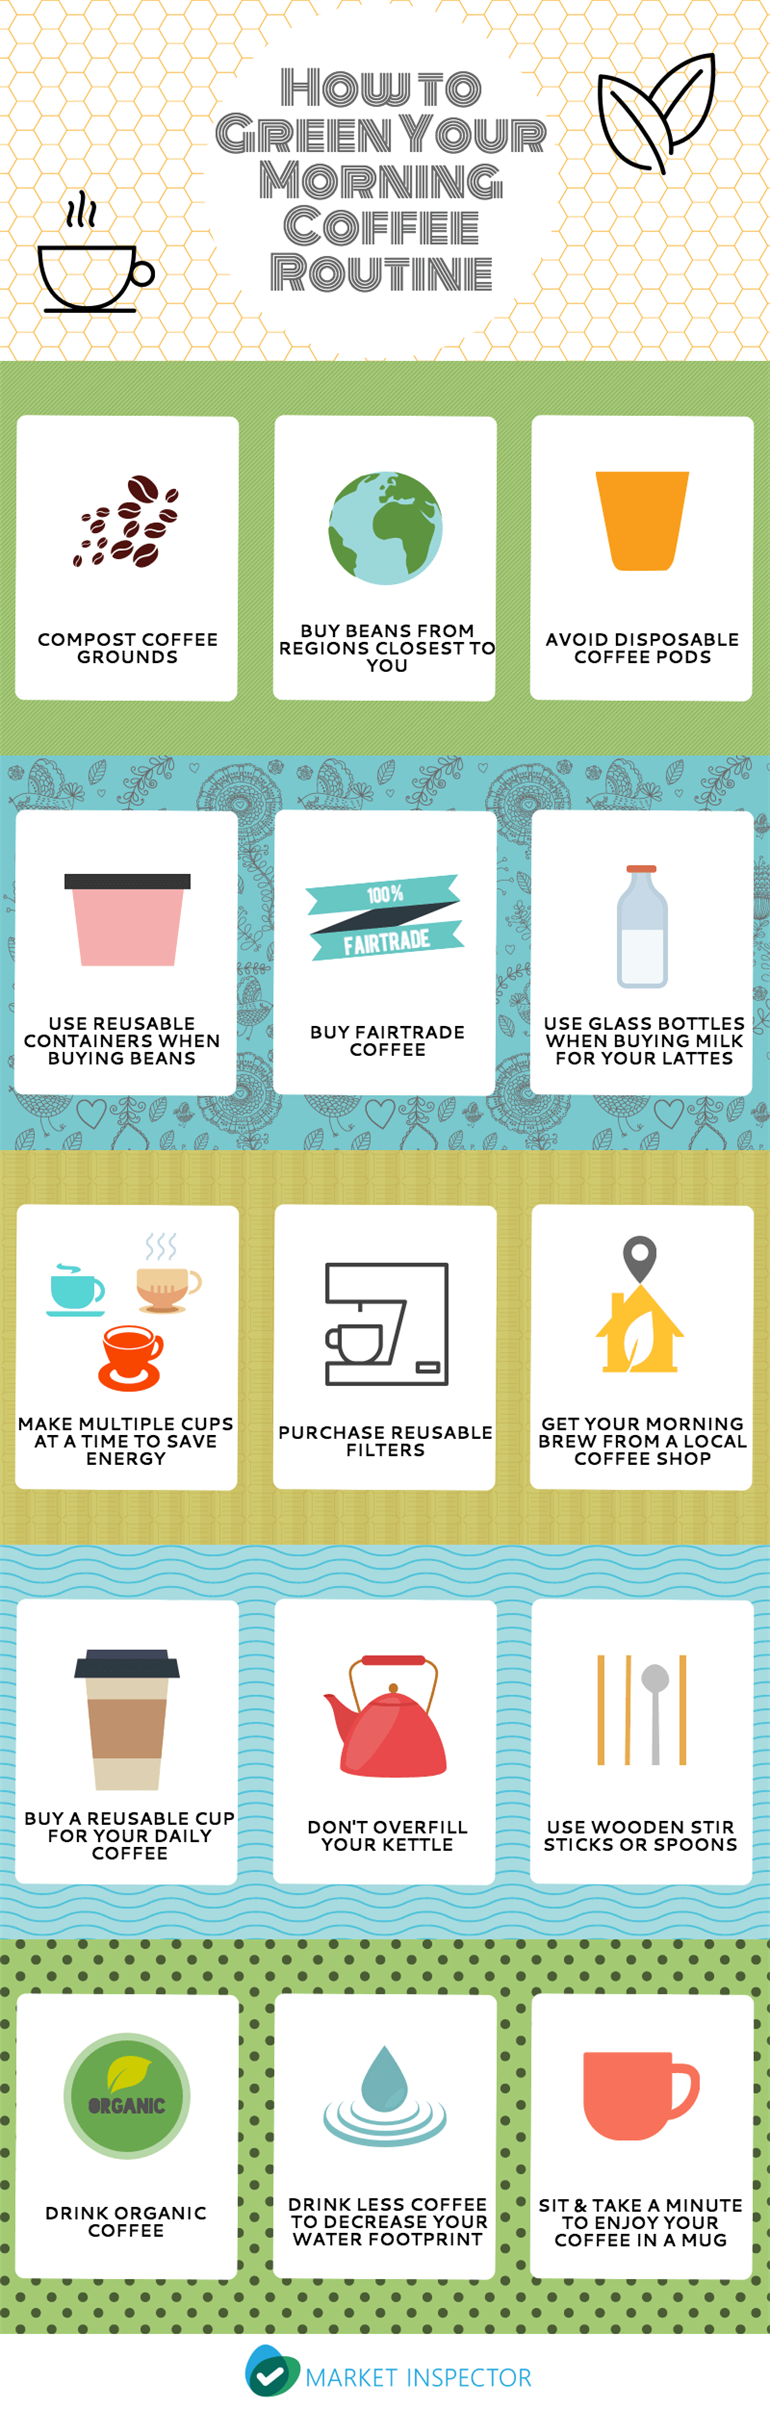 How to Green Your Coffee Routine